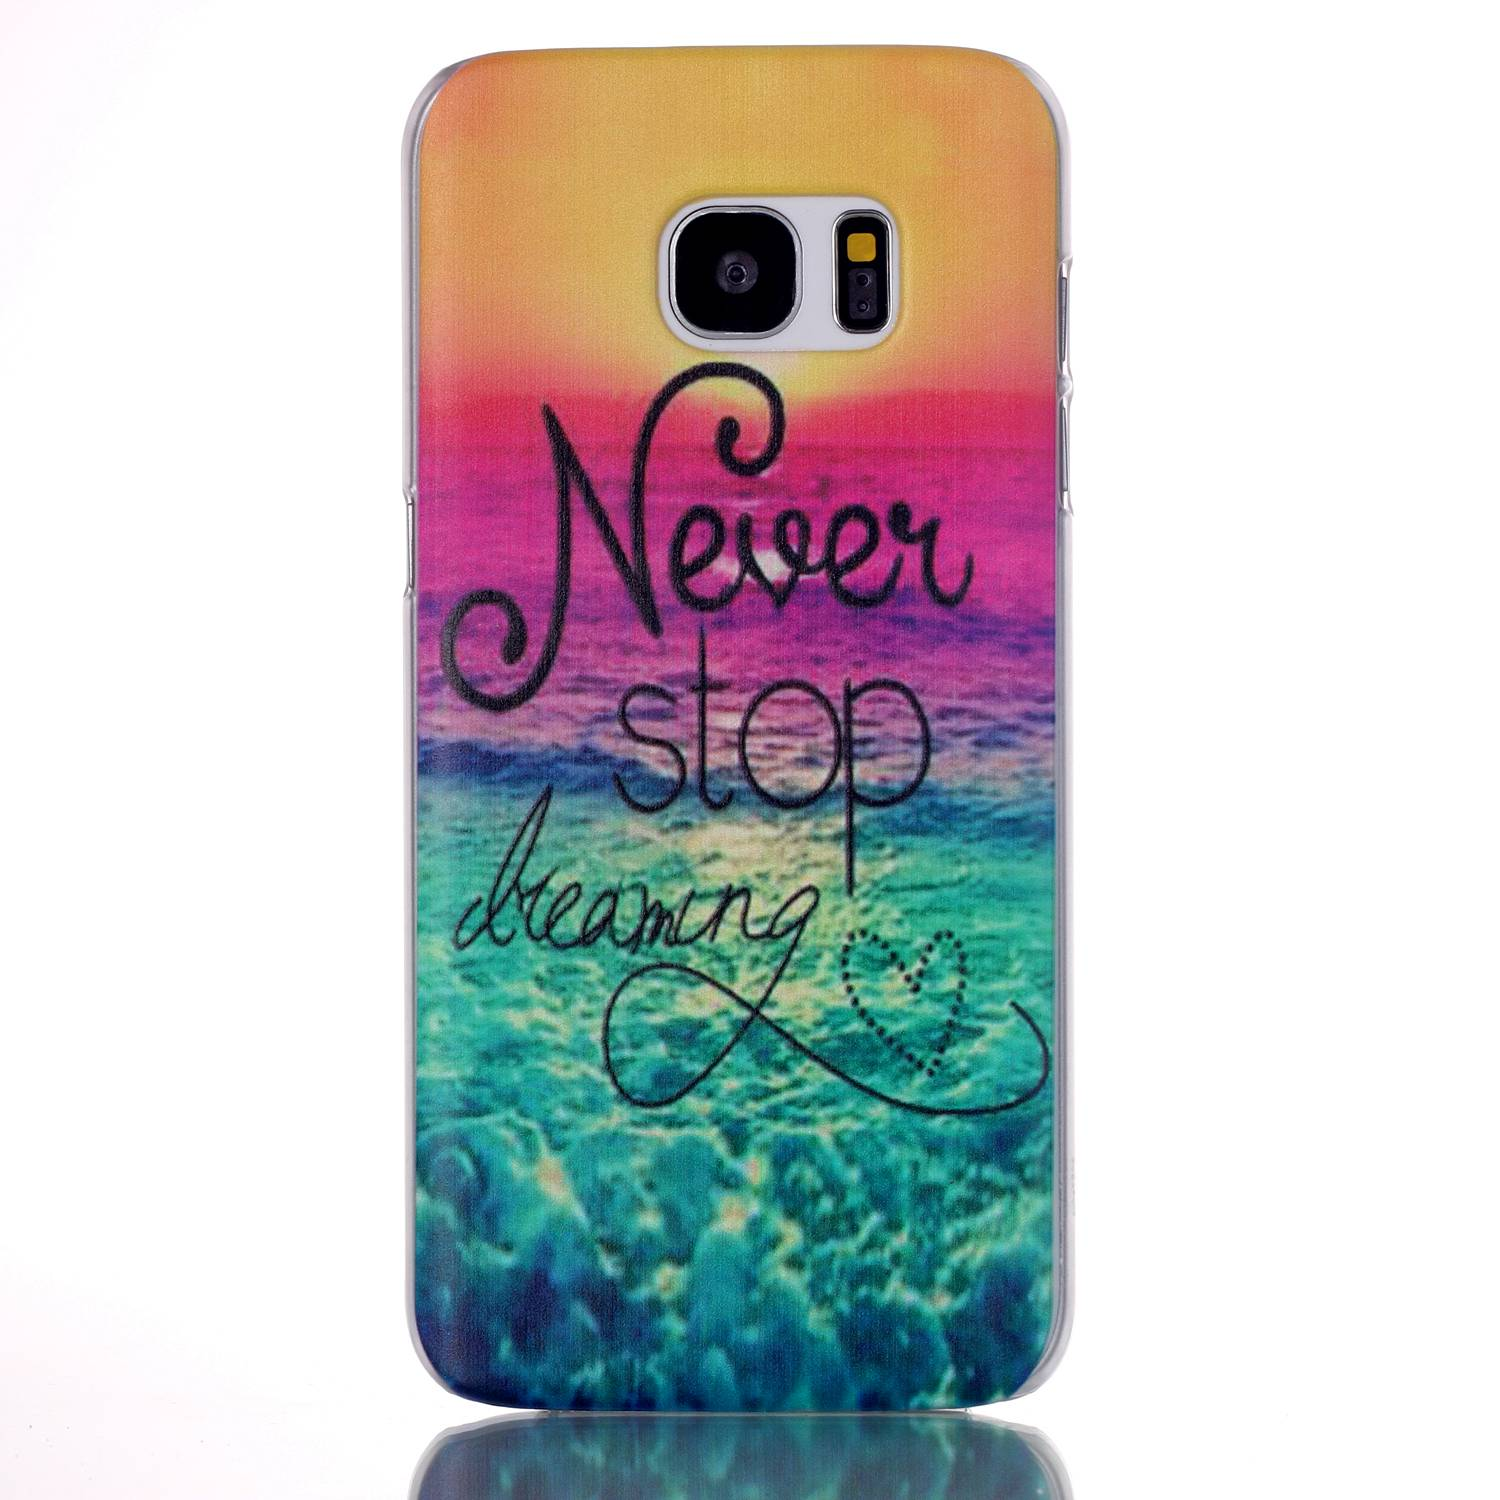 2017 fashion cute pattern design hard back cover case for